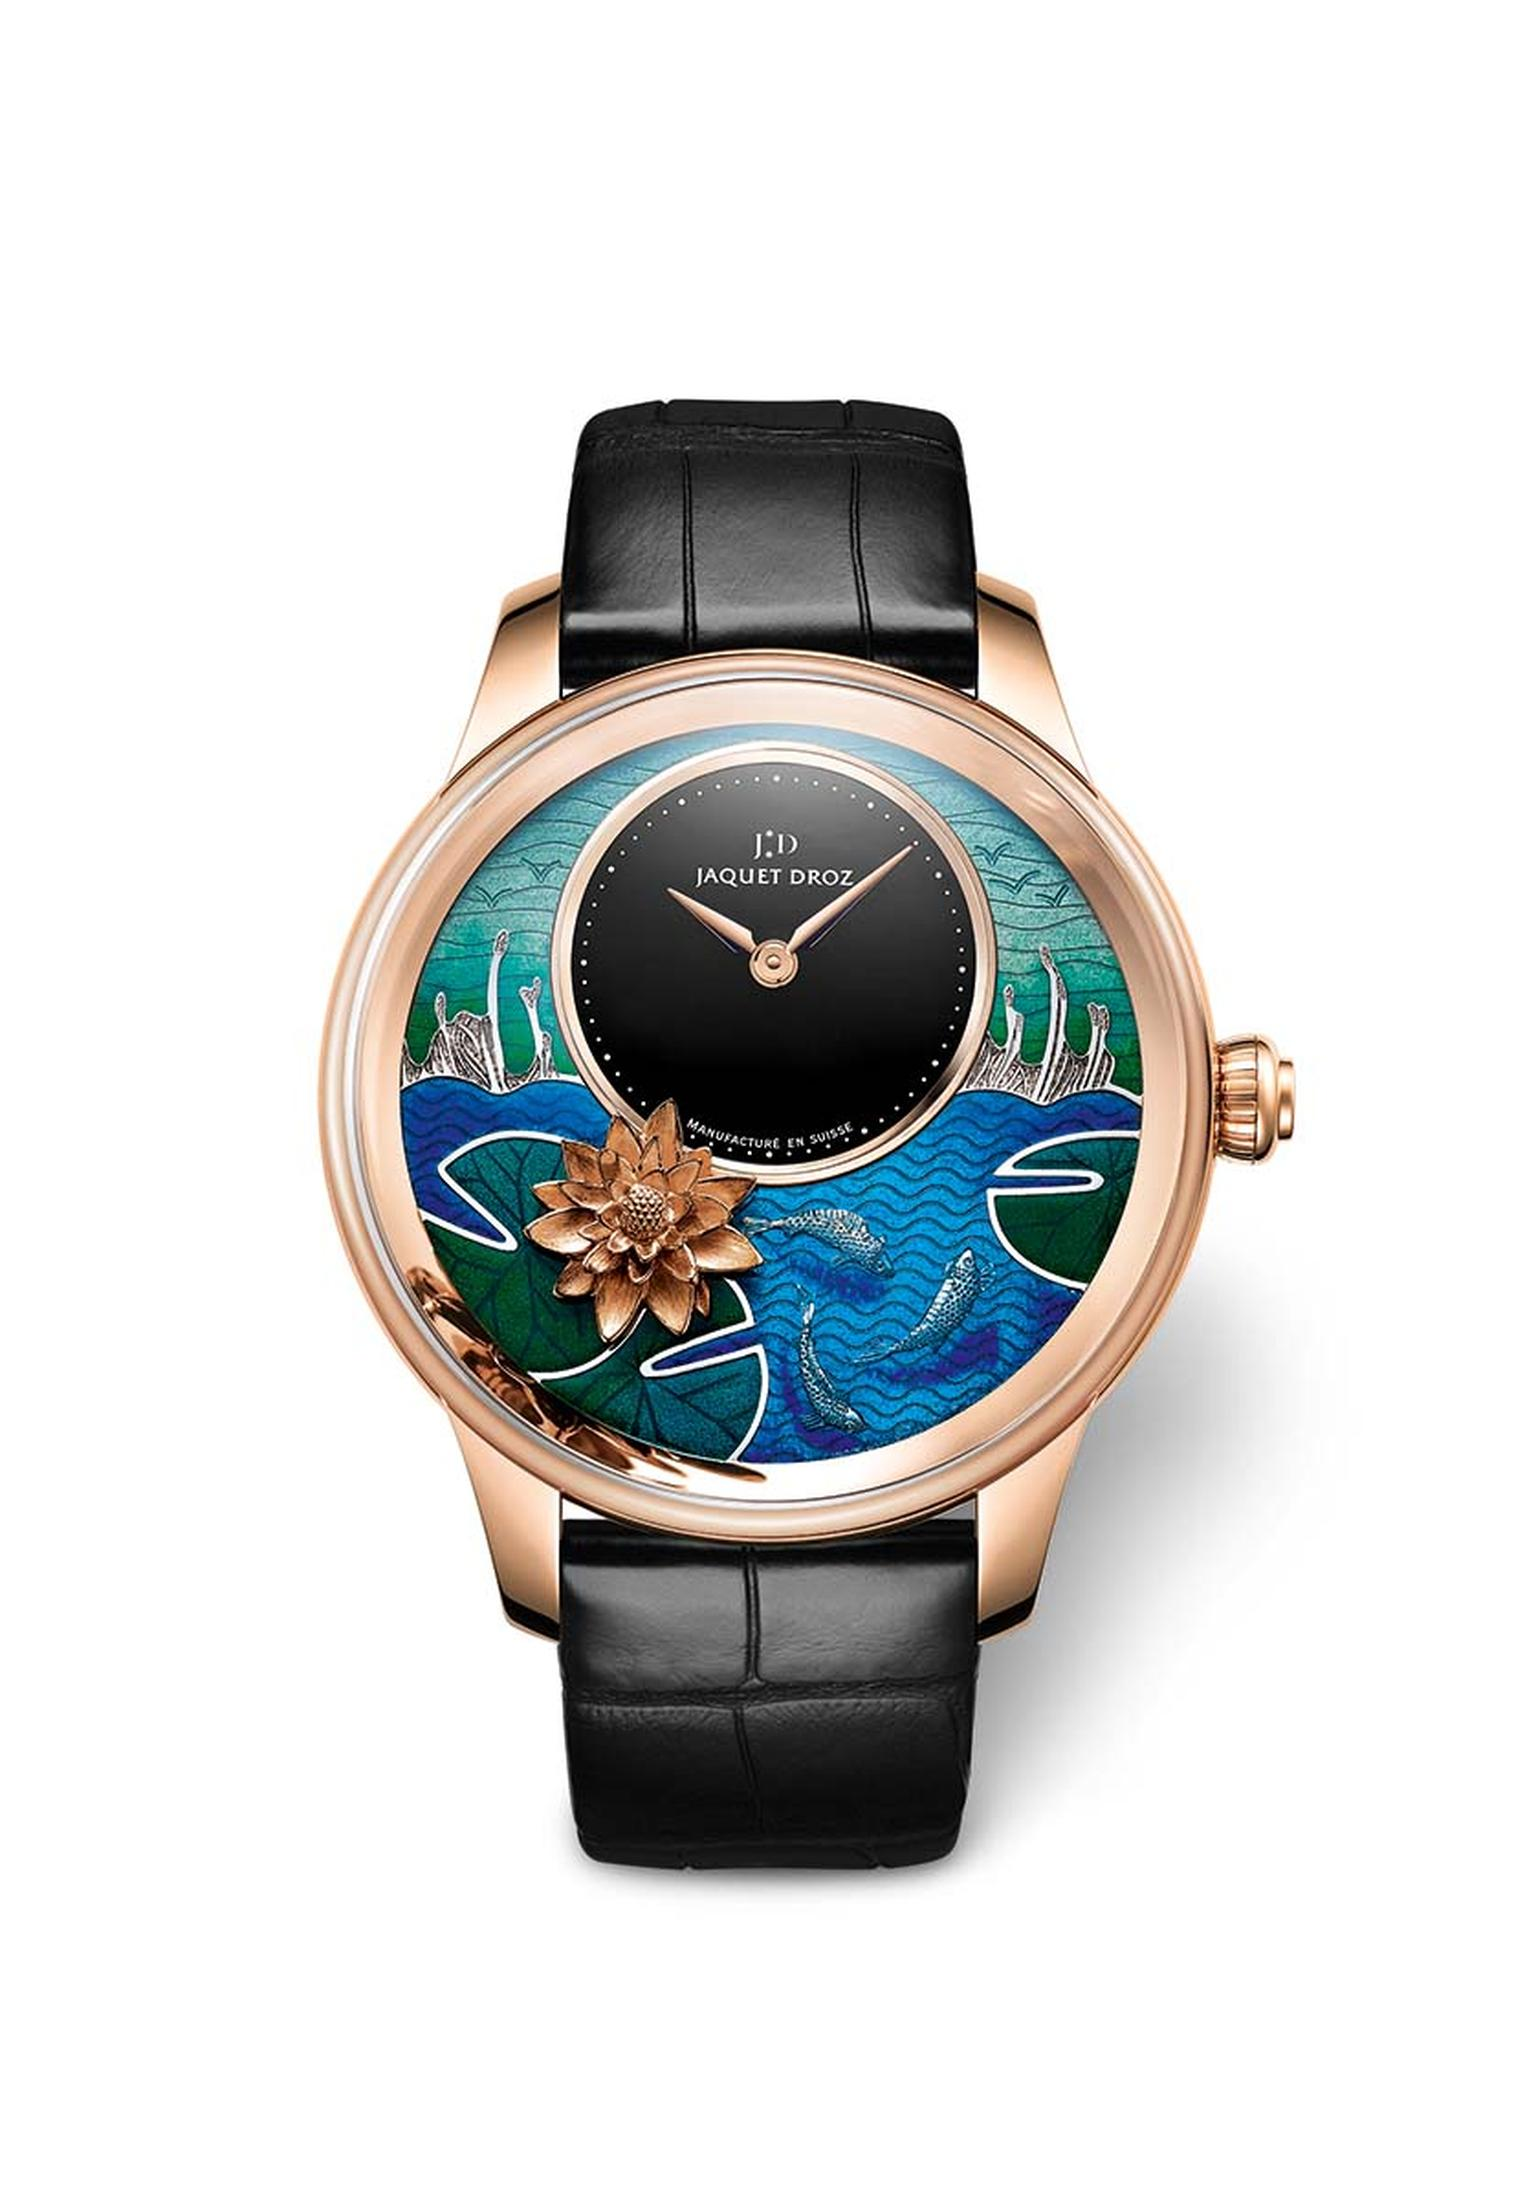 Fish watches_Jaquet Droz_Petite Heure  Minute Carps watch.jpg